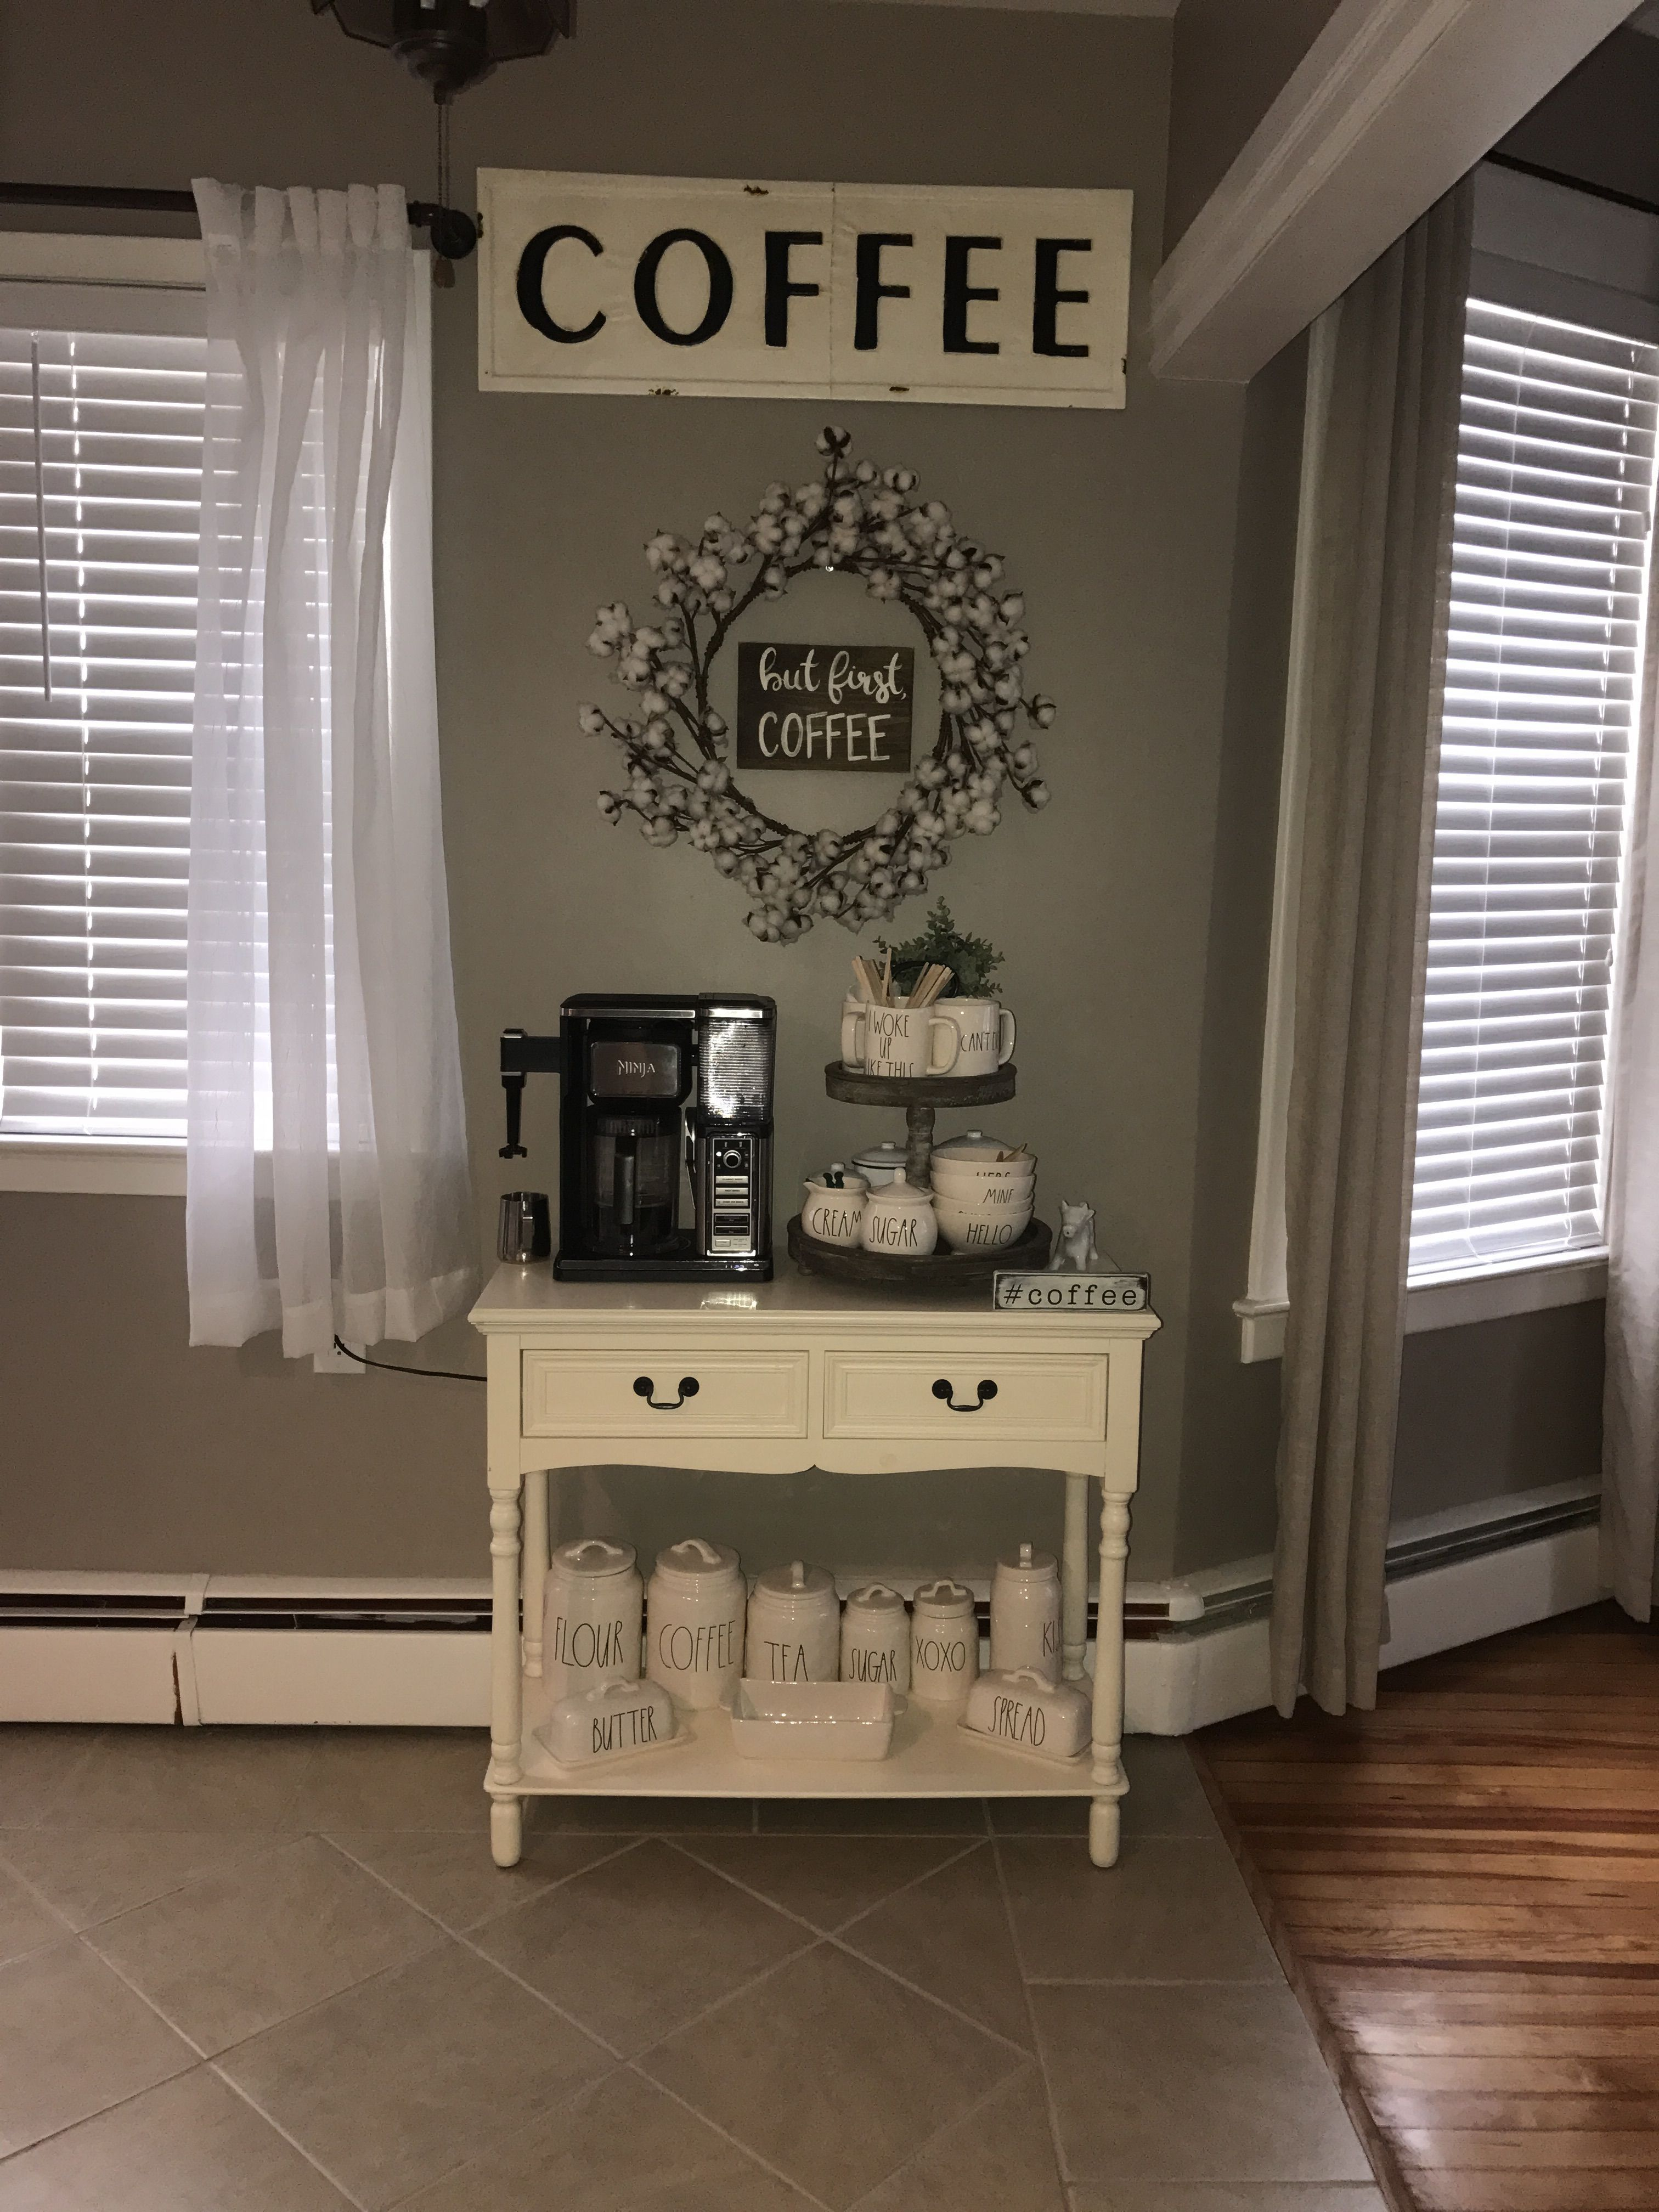 coffee decoration for kitchen rugs area bar cotton wreath farmhouse decor home